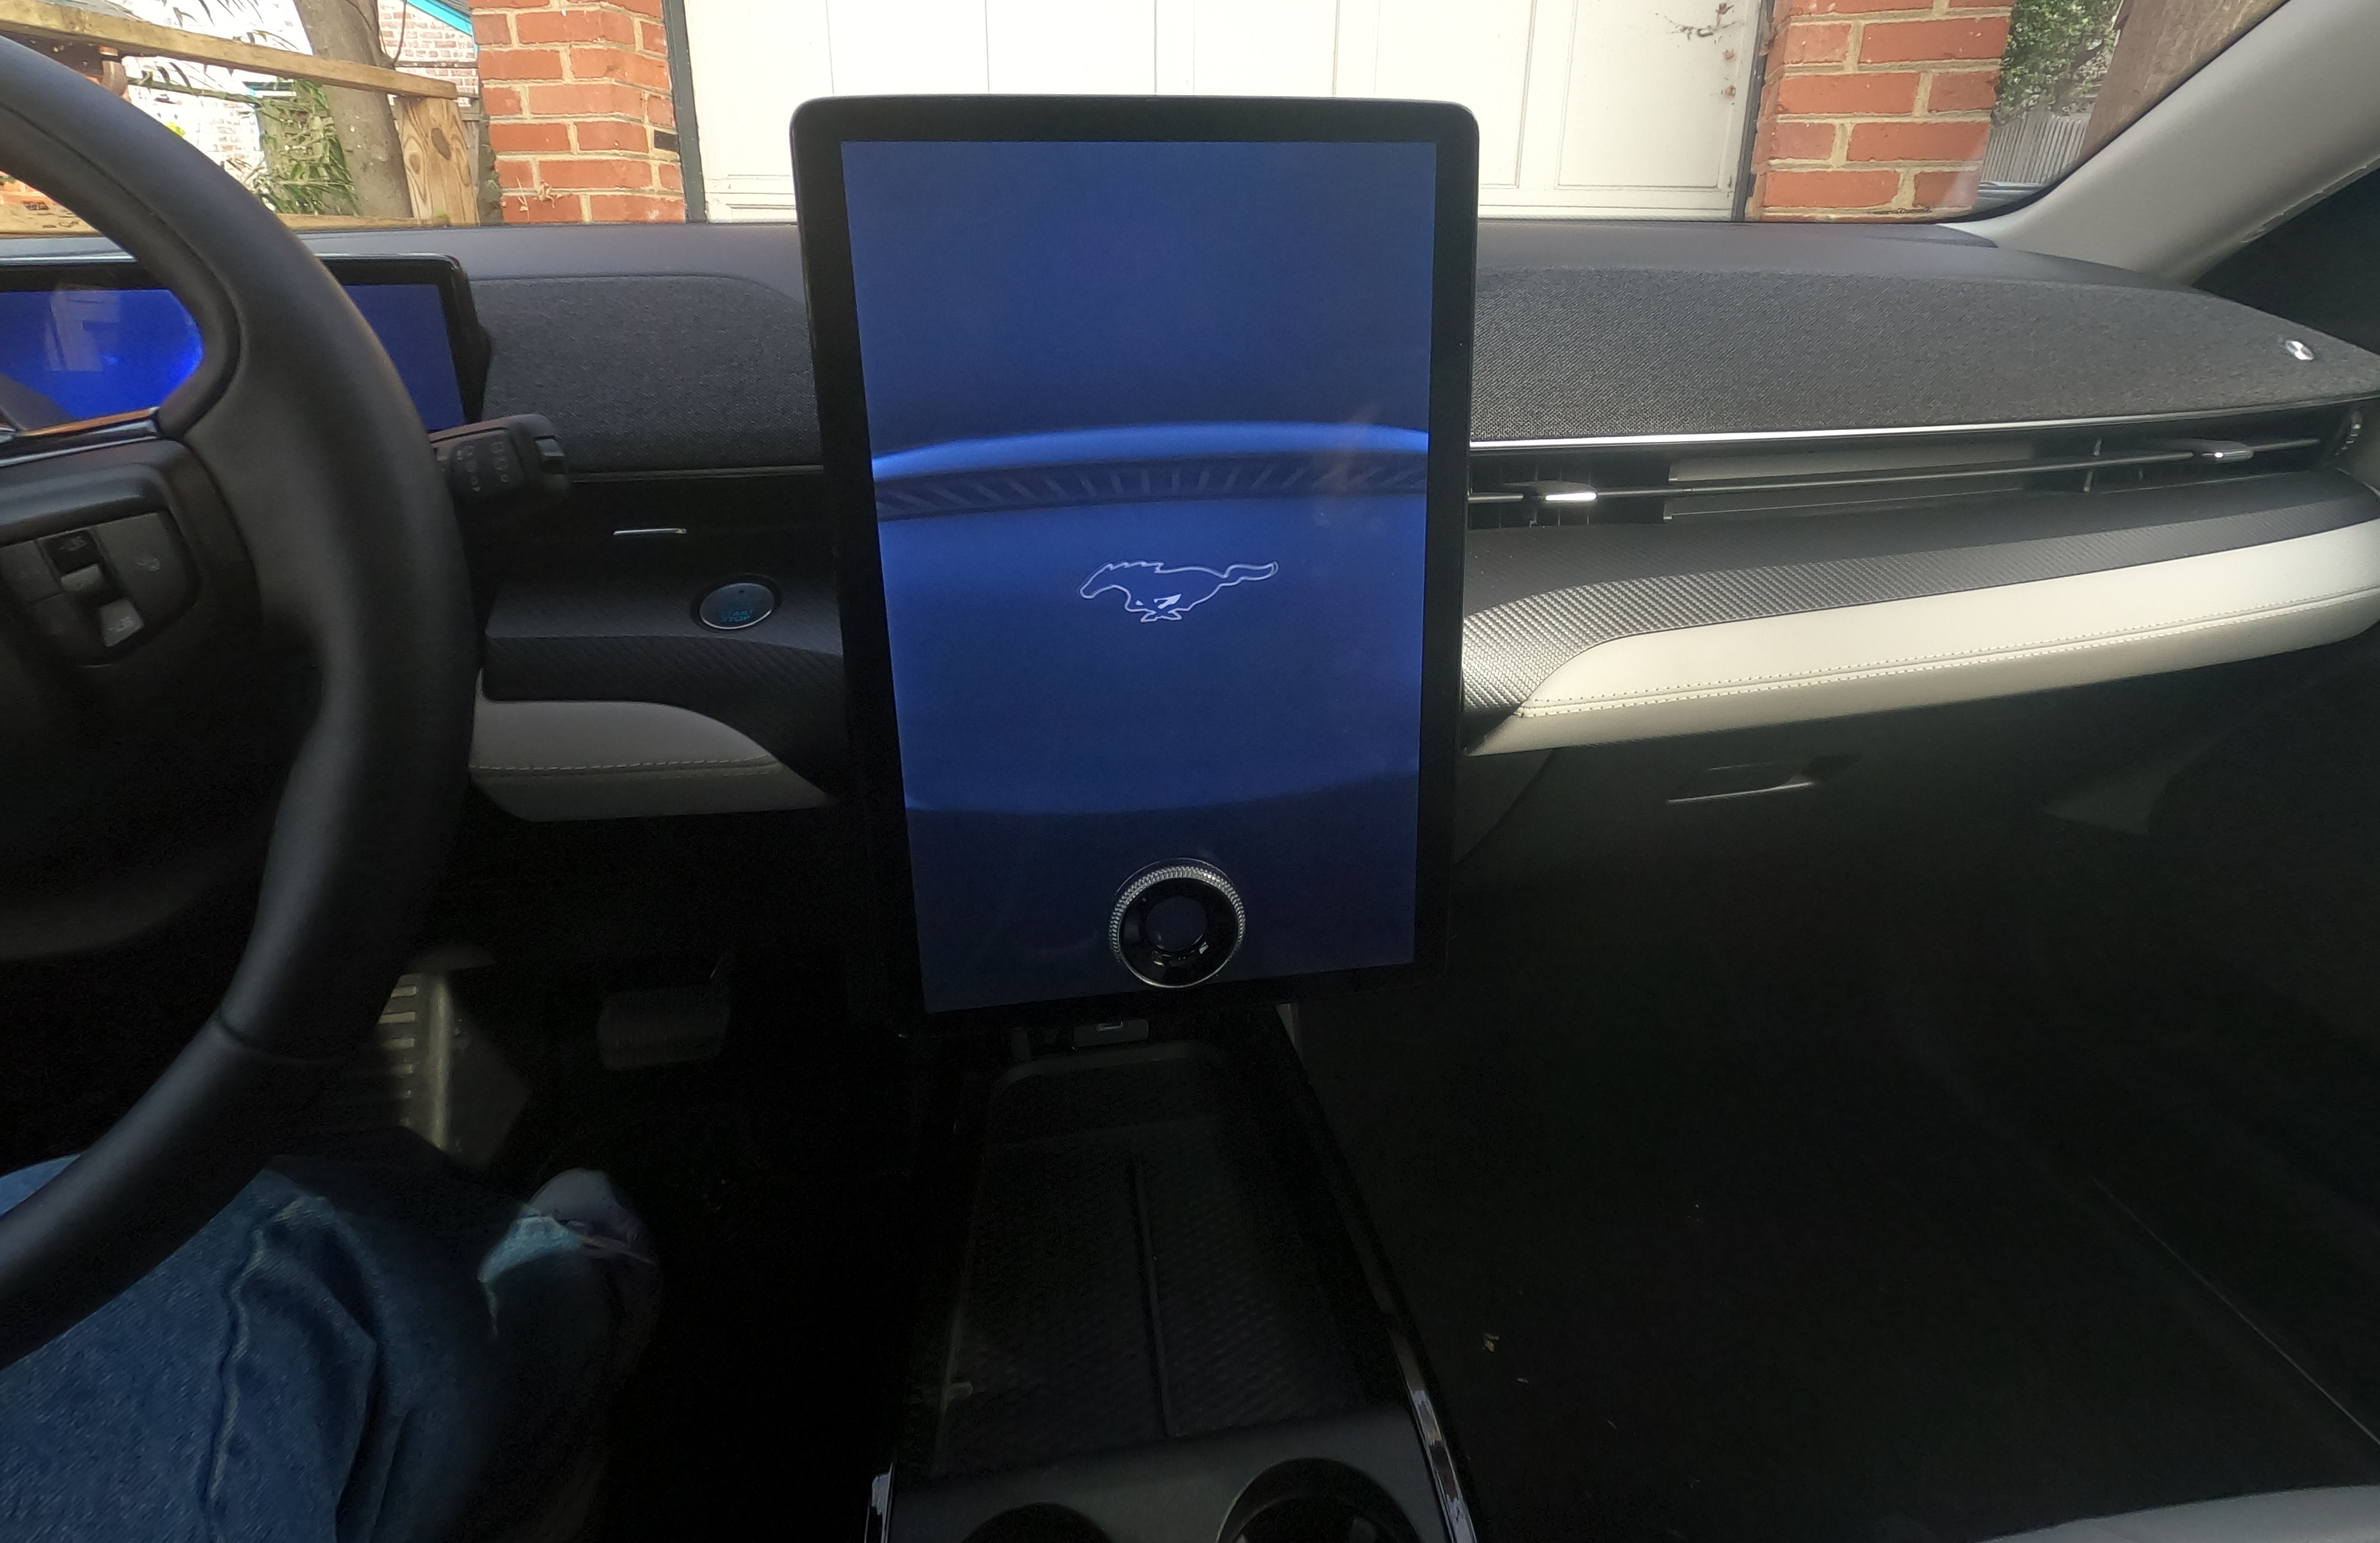 Center Screen on the Ford MACHE